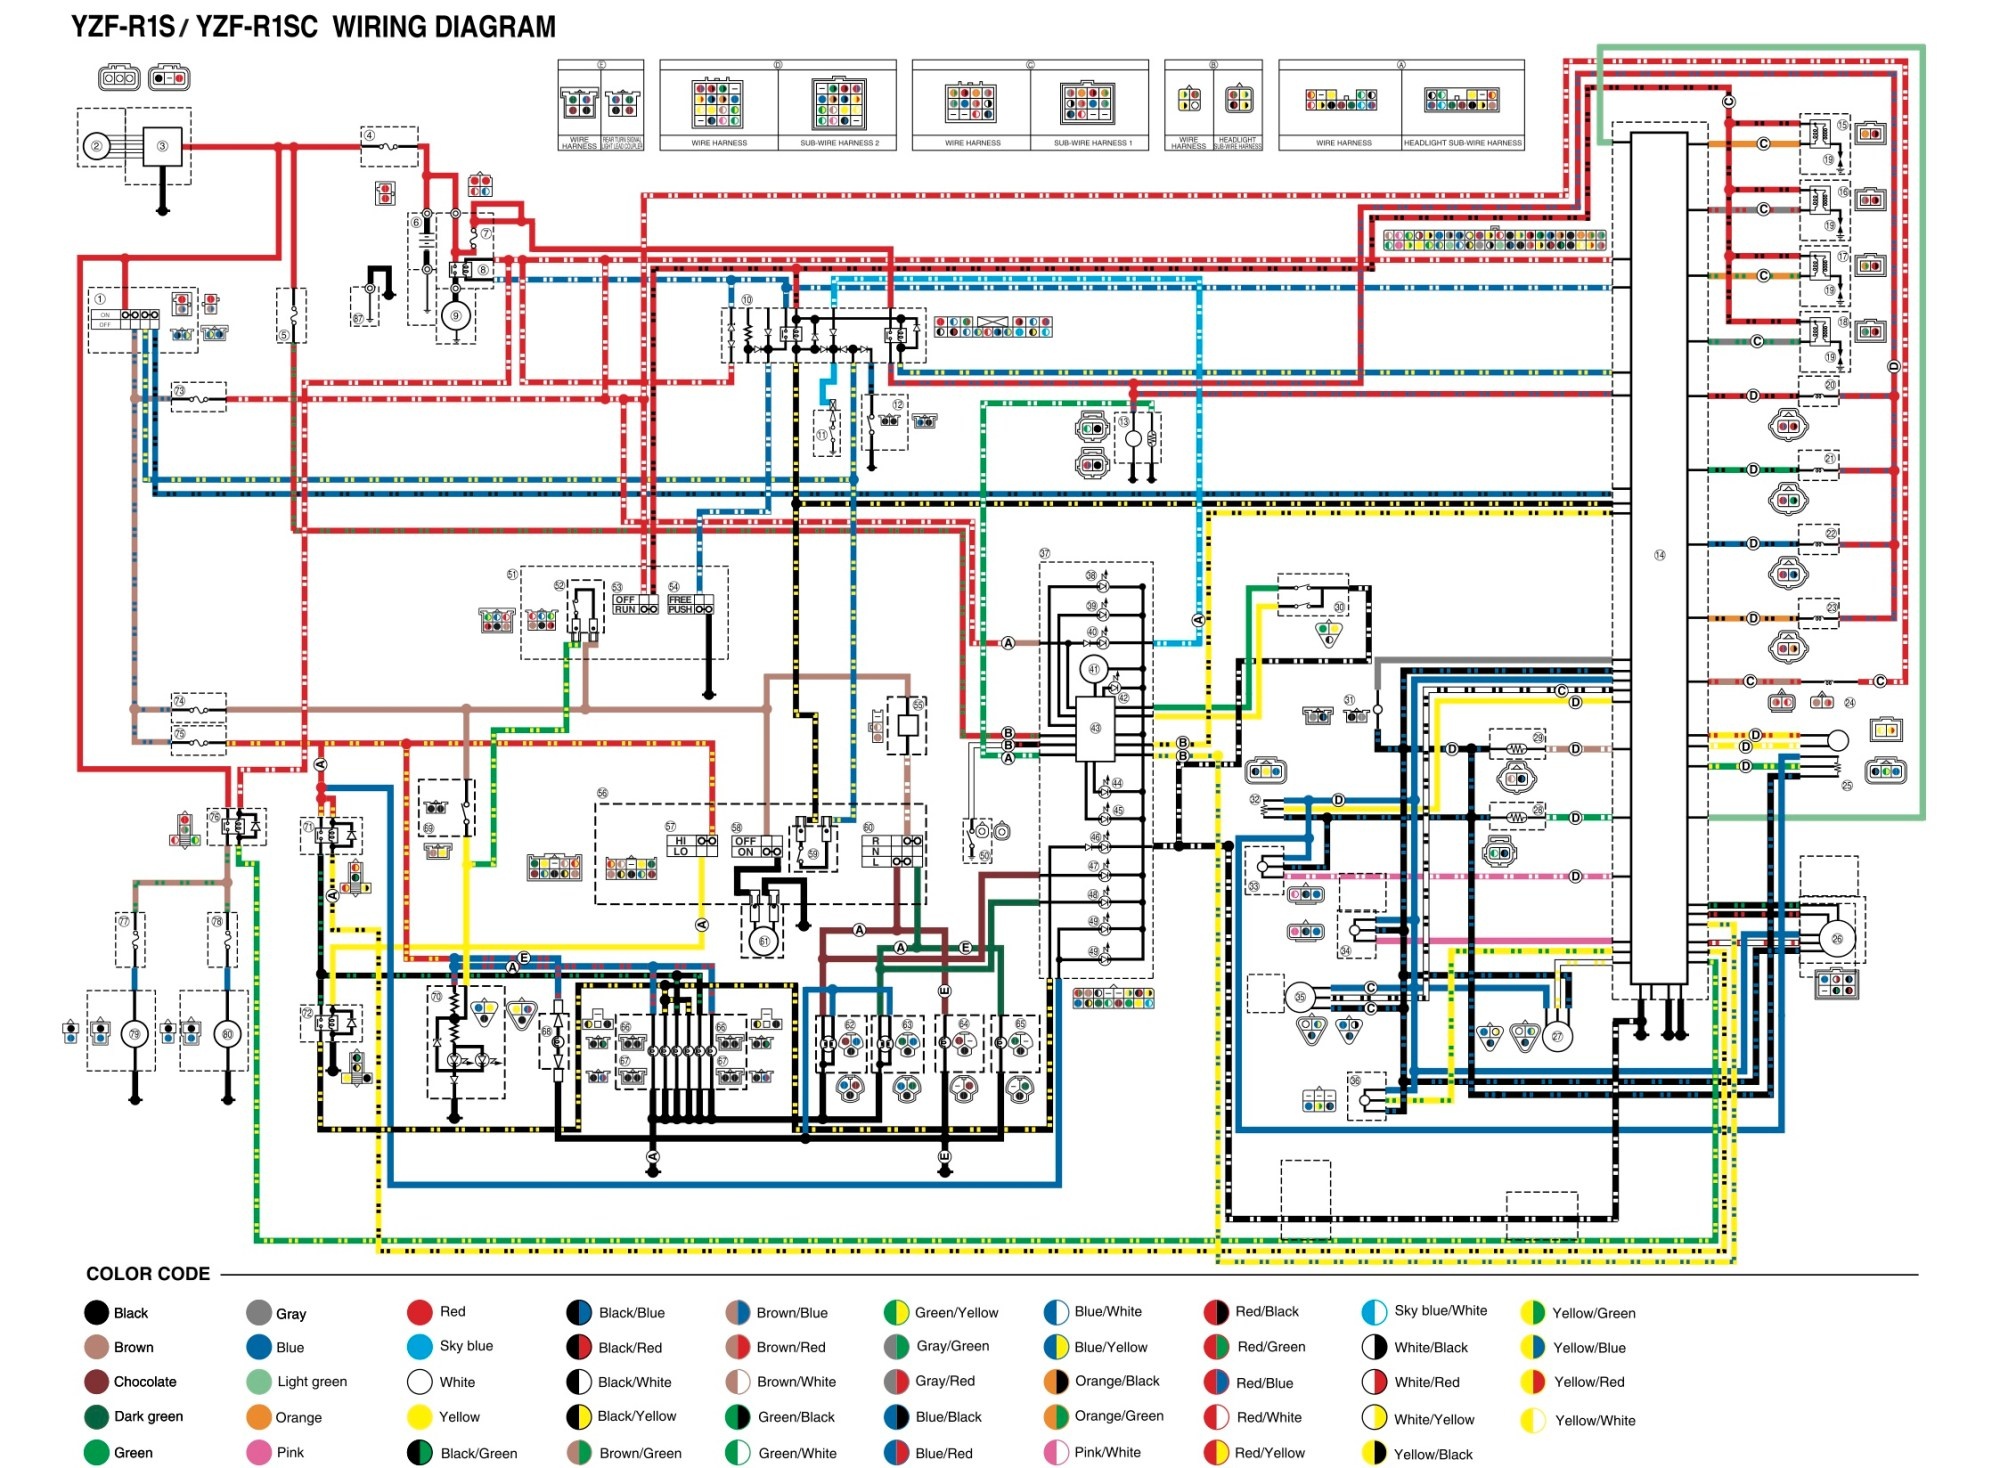 hight resolution of yzf r1 wire diagram completed wiring diagrams 2003 yamaha zuma wiring diagram 2003 yamaha r1 wiring diagram